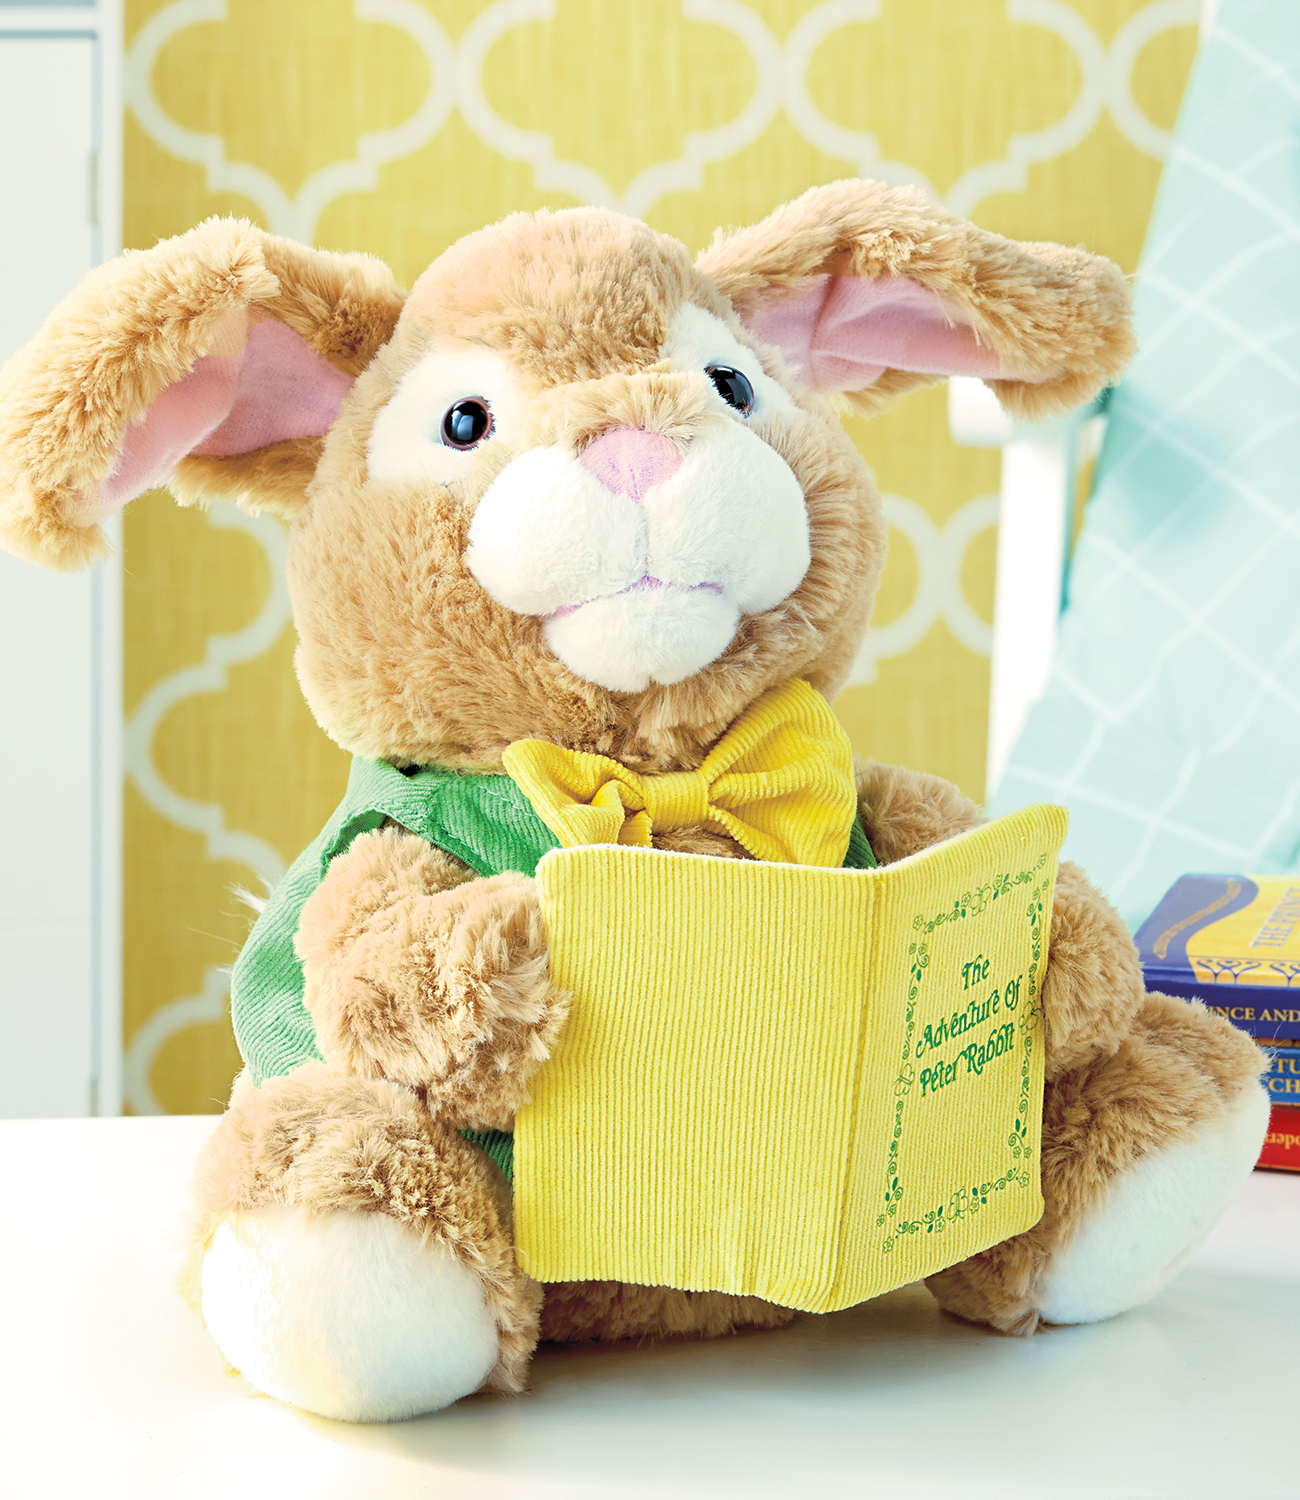 Stuffed animal toy for Easter.